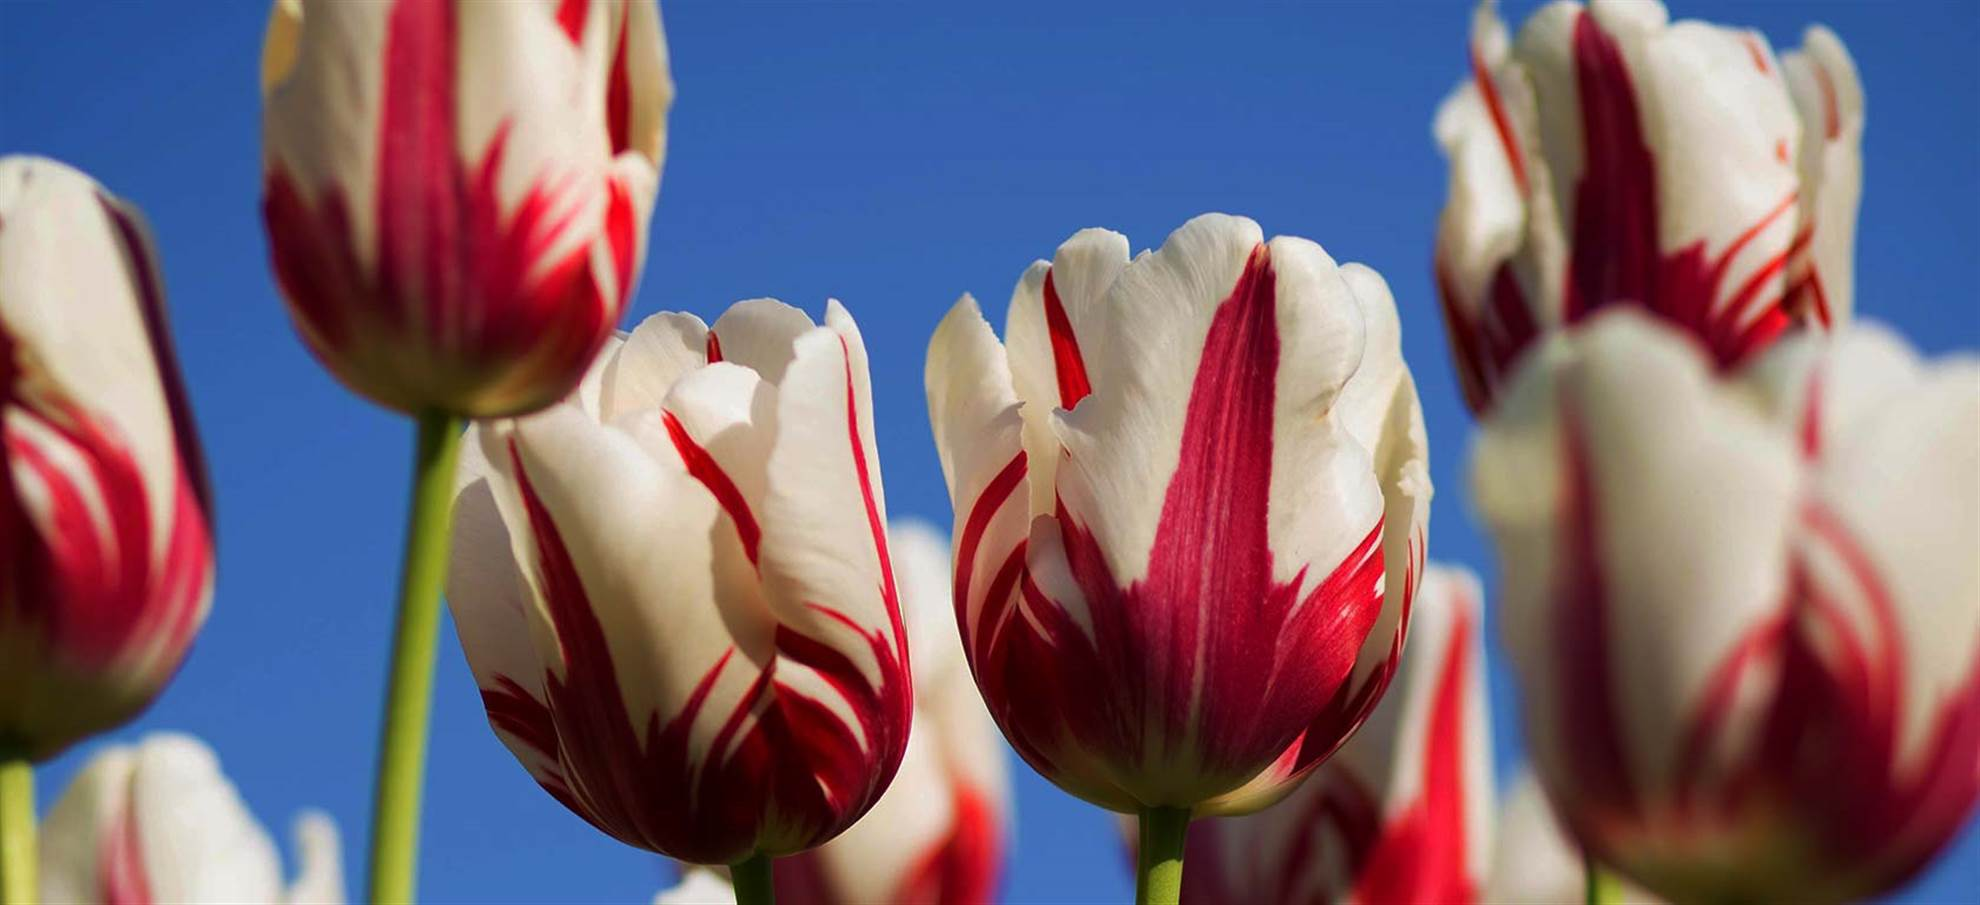 Keukenhof billet coupe-file 2020